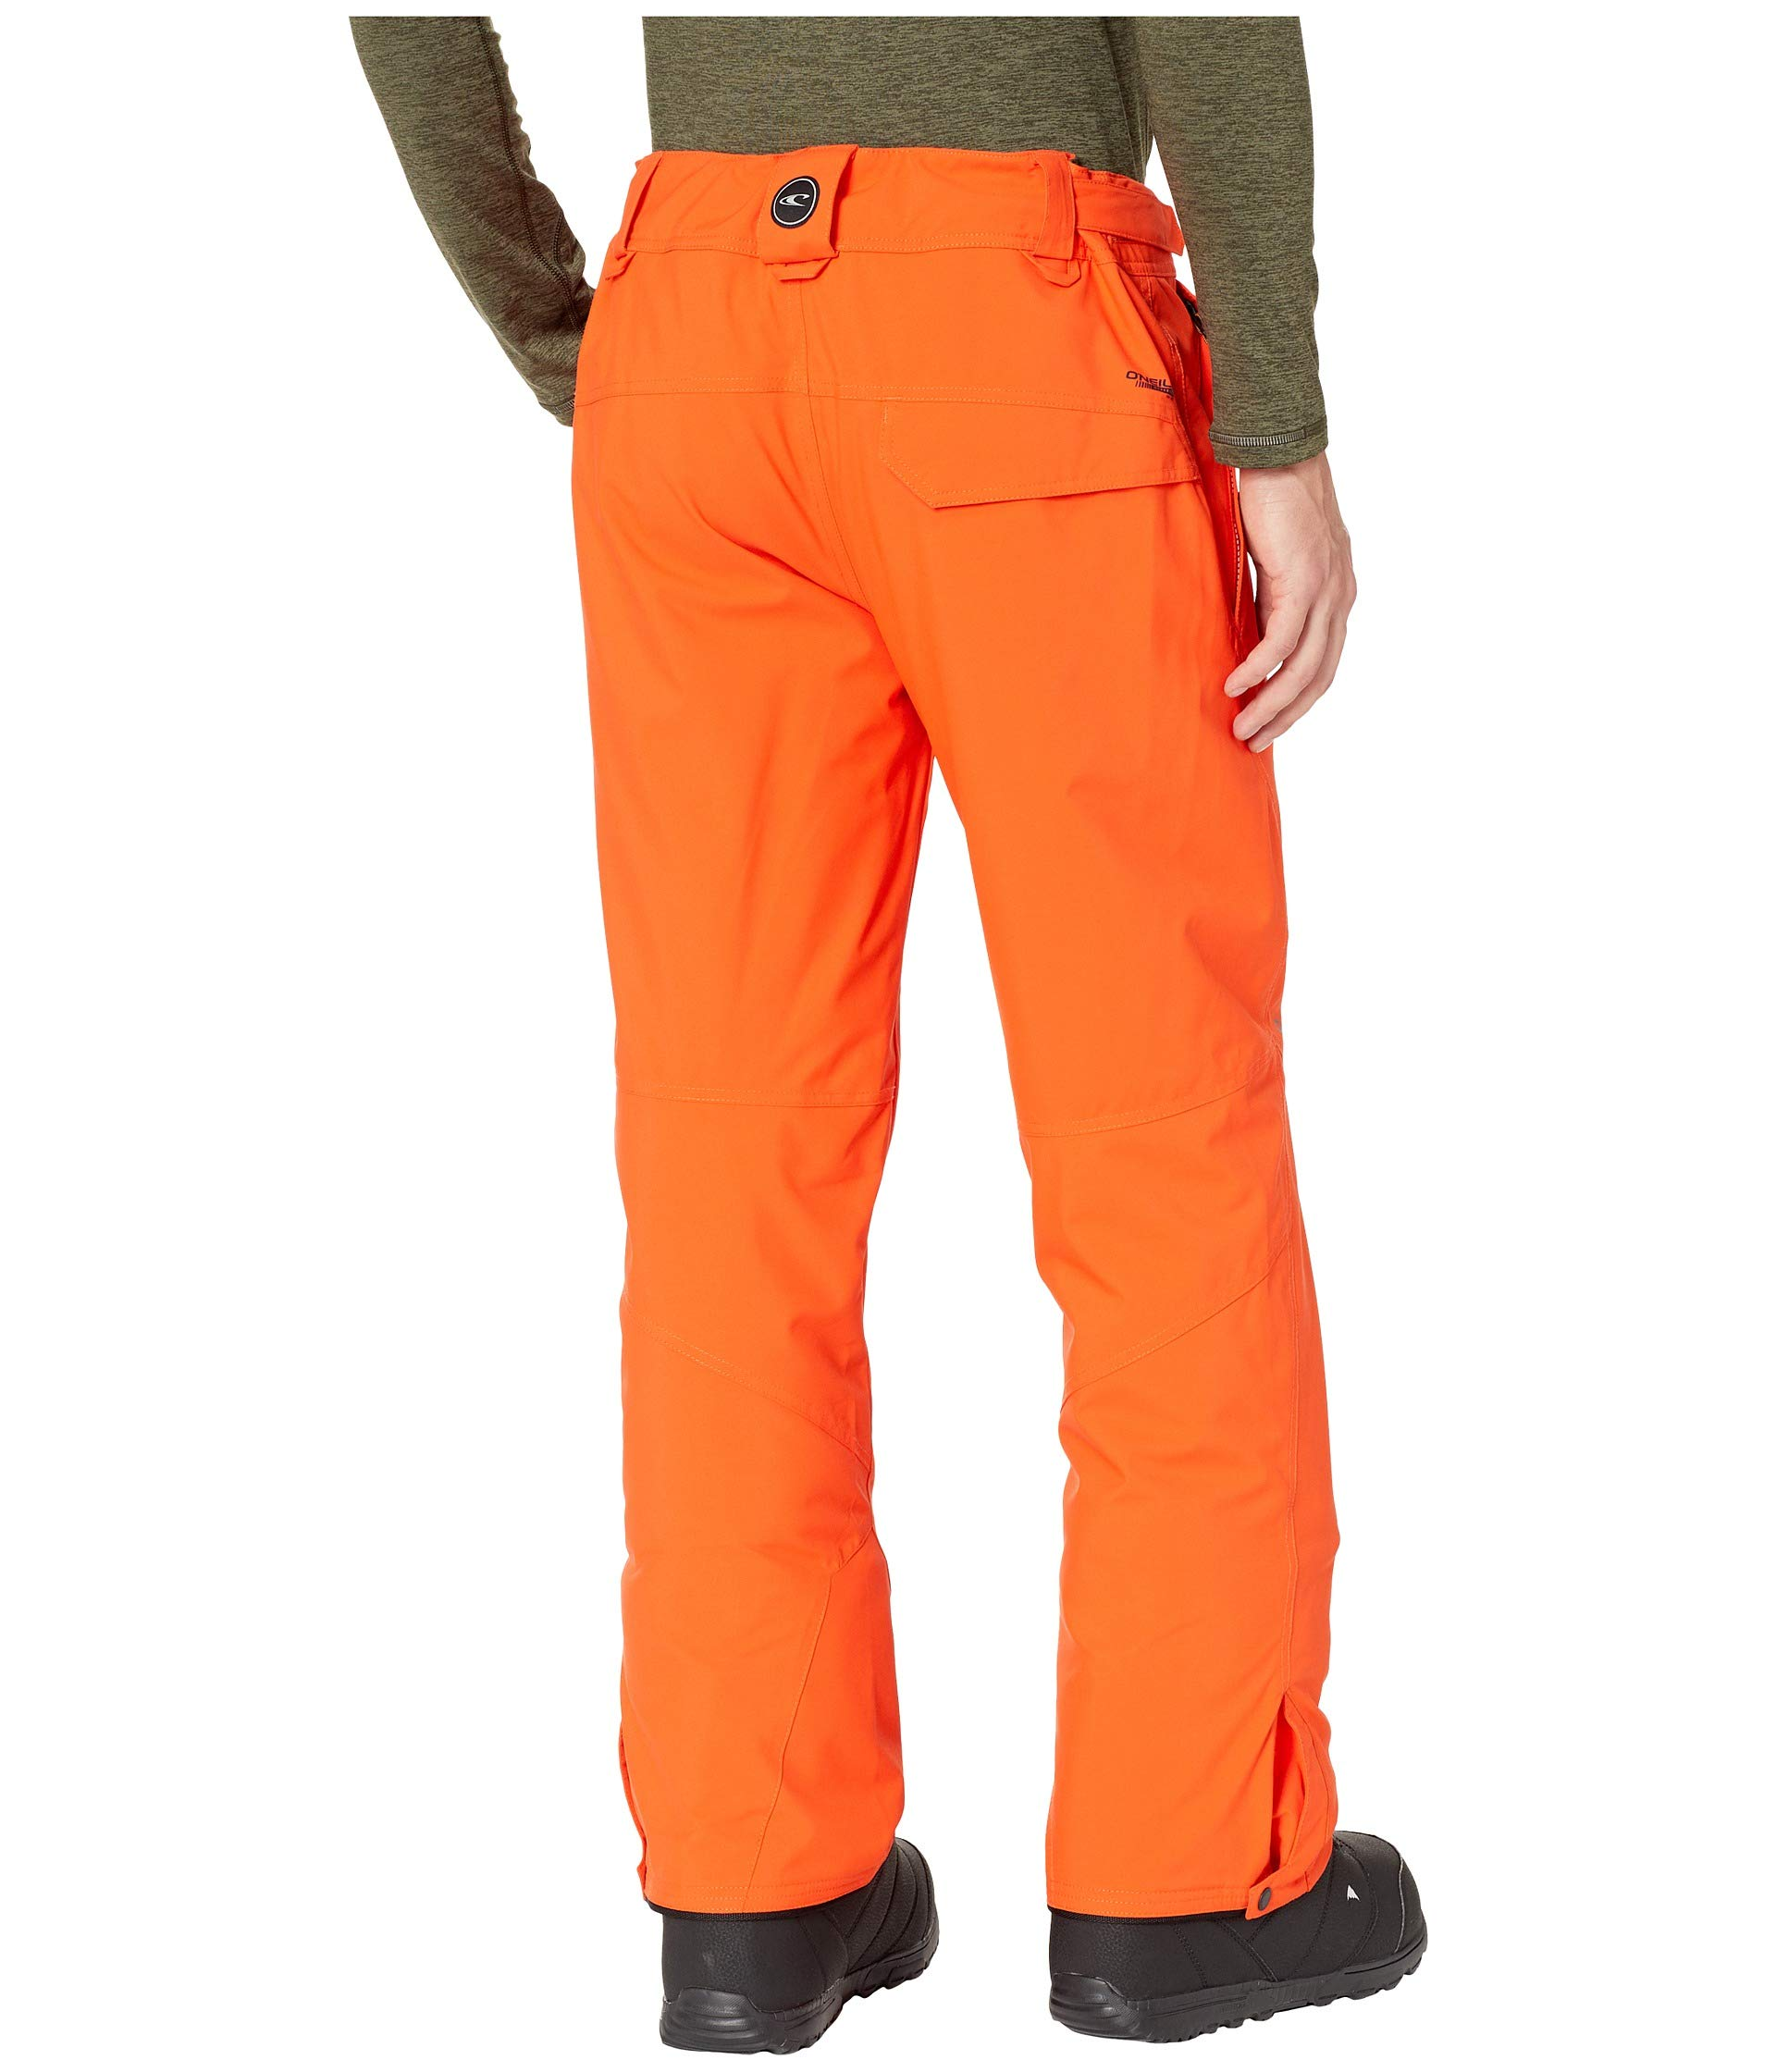 Bright Hammer Insulated Orange Pants O'neill q7vBwxftq